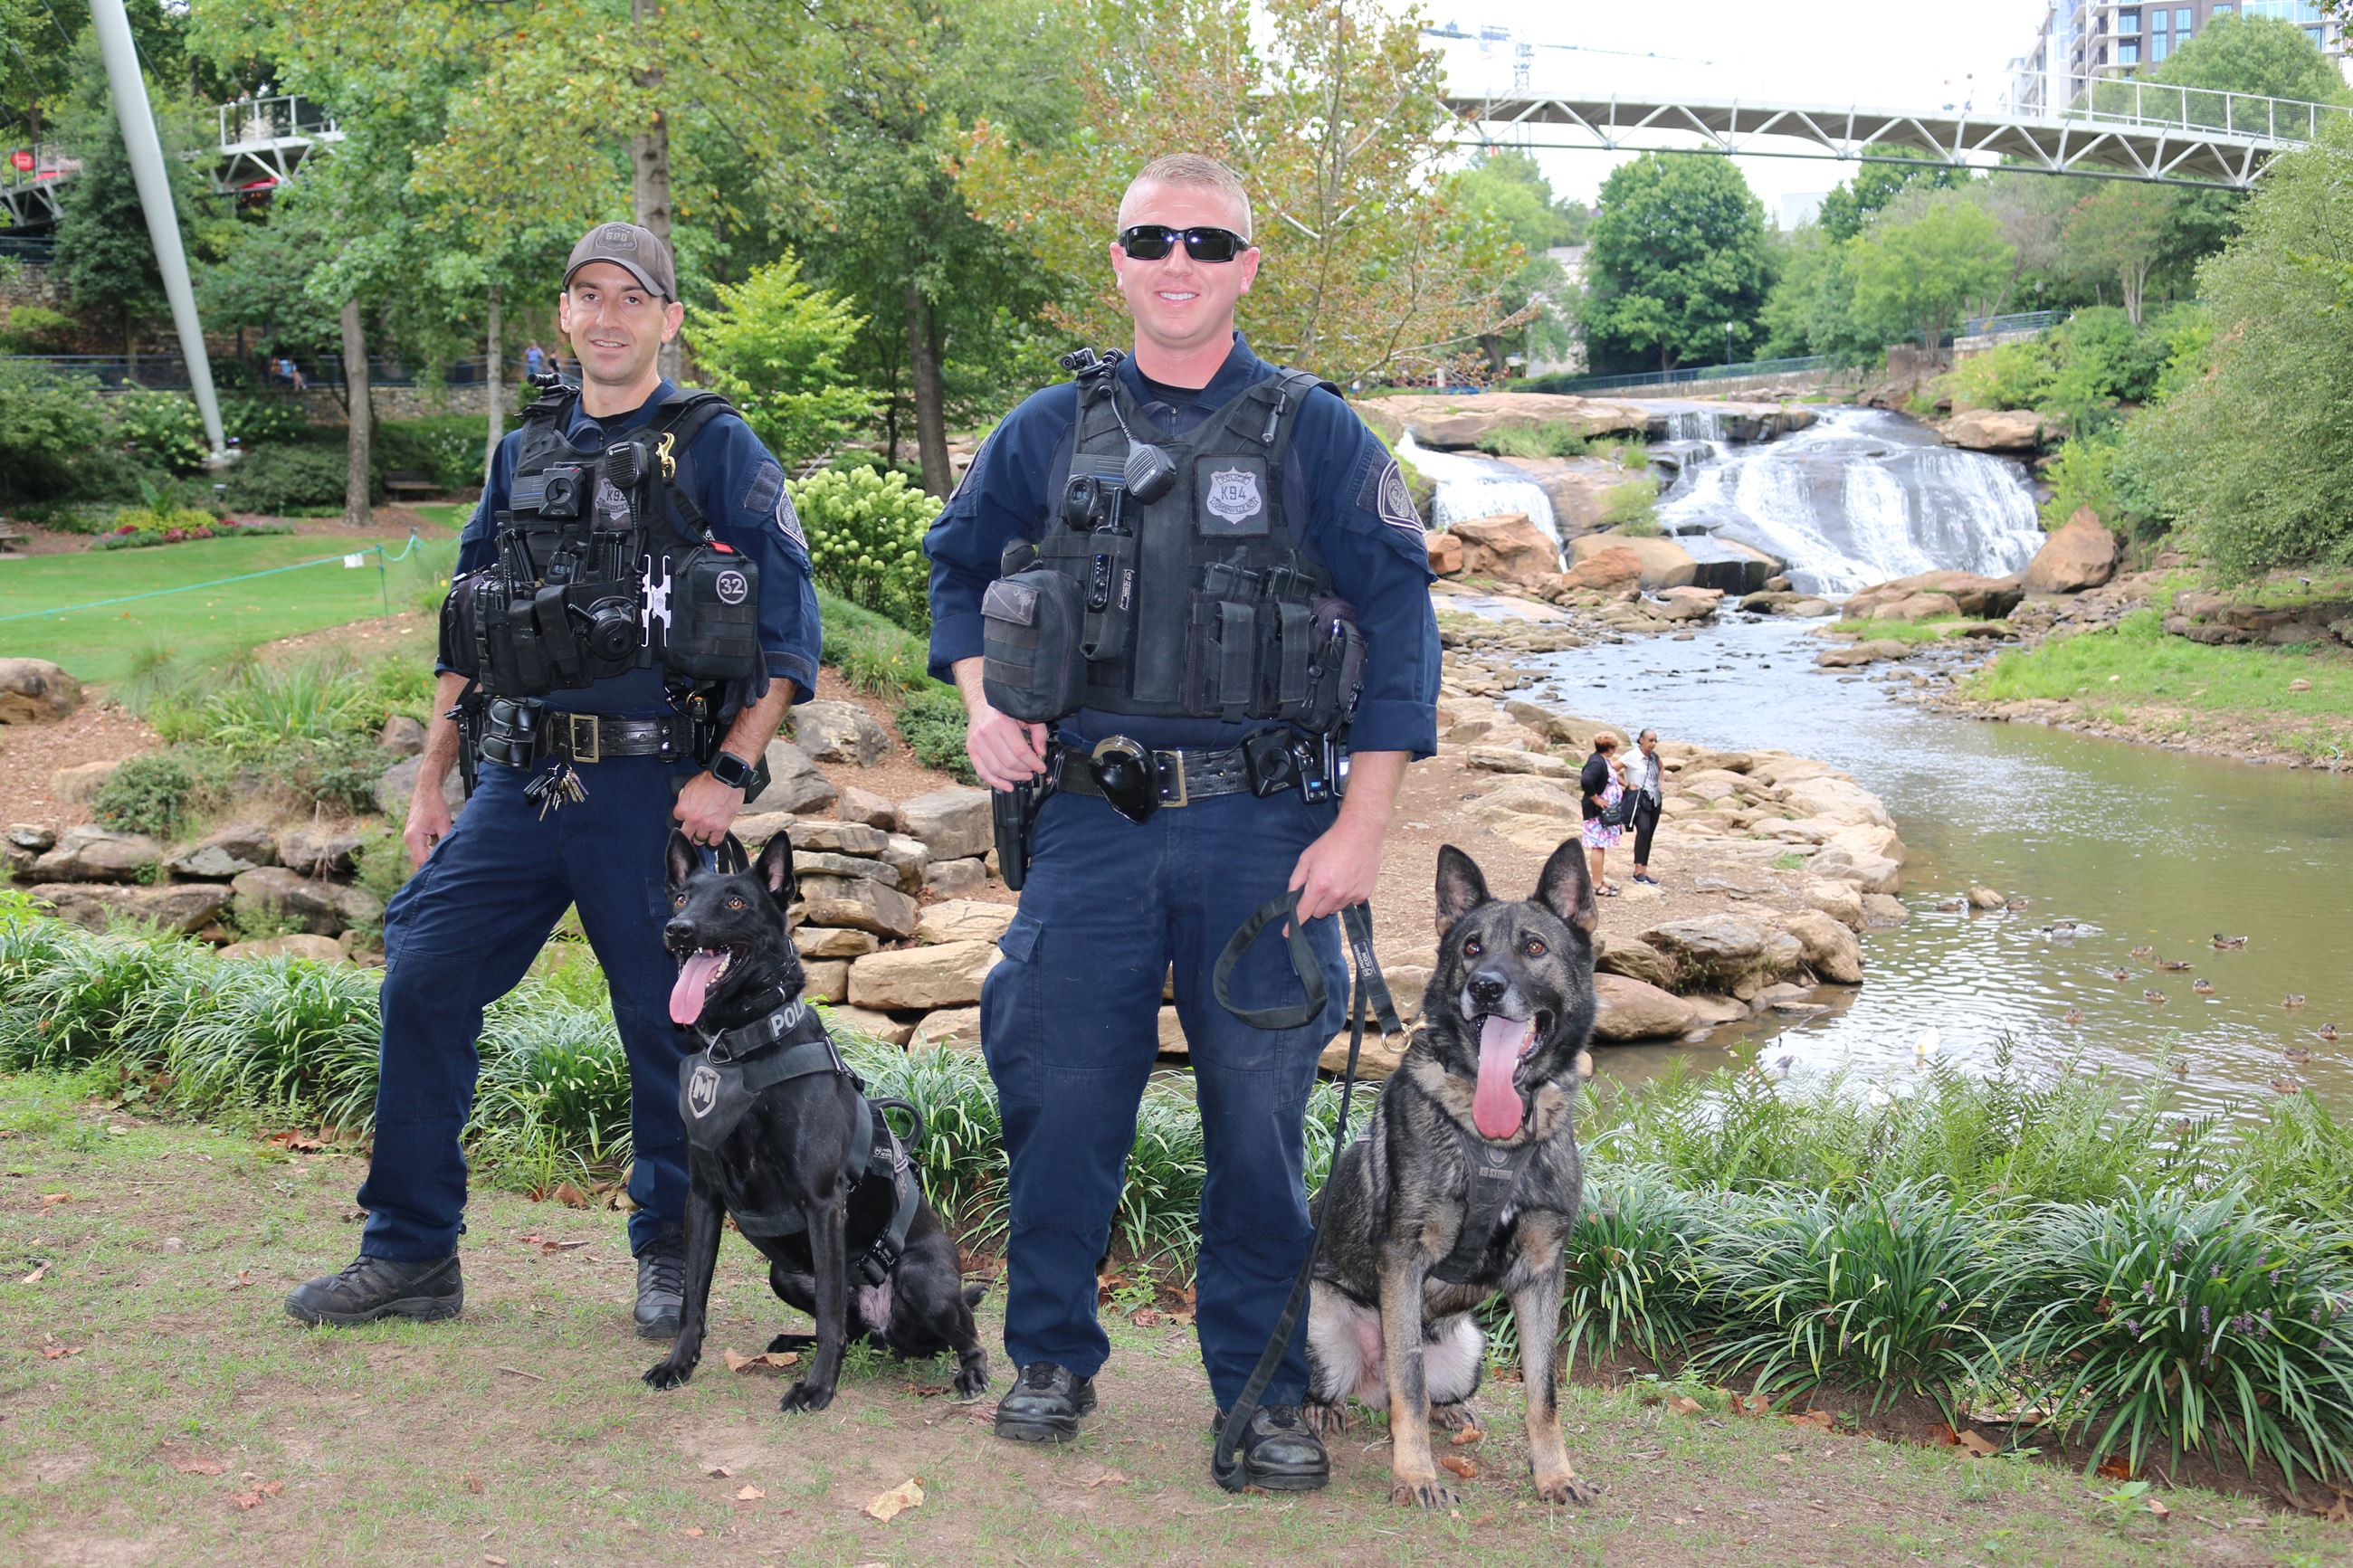 Officer Newman with K9 Sarge alongside Officer Weeks with Leo.